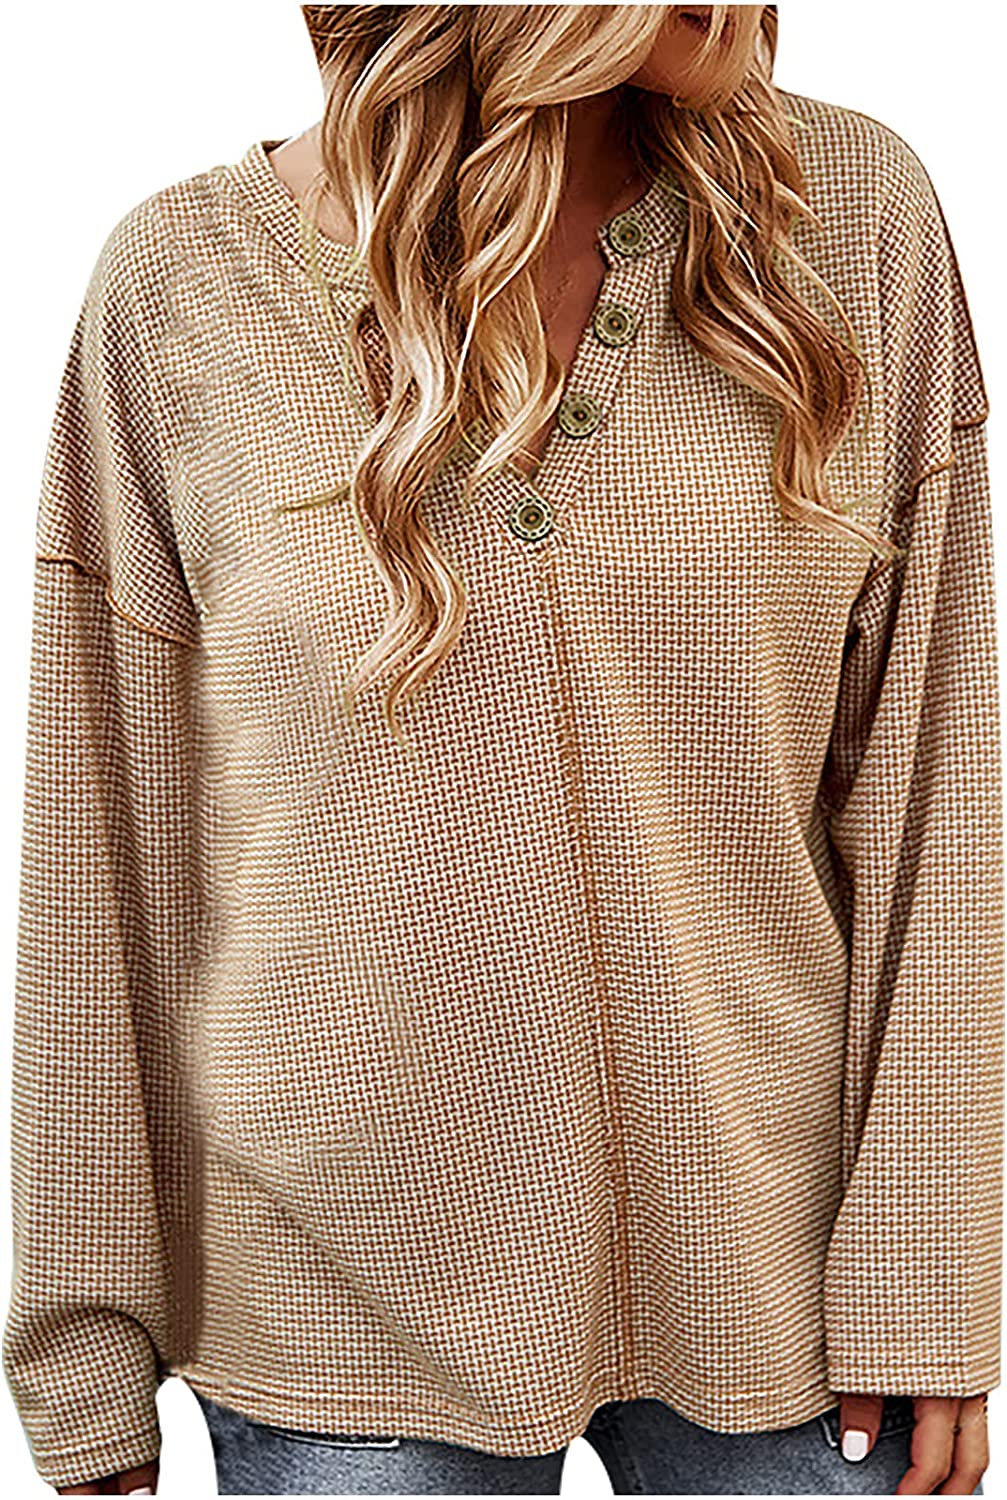 Plus Size Tops for Women V Neck Button Up Long Sleeve Knitting Elegant Fall Sweaters Soild Comfy Pullover